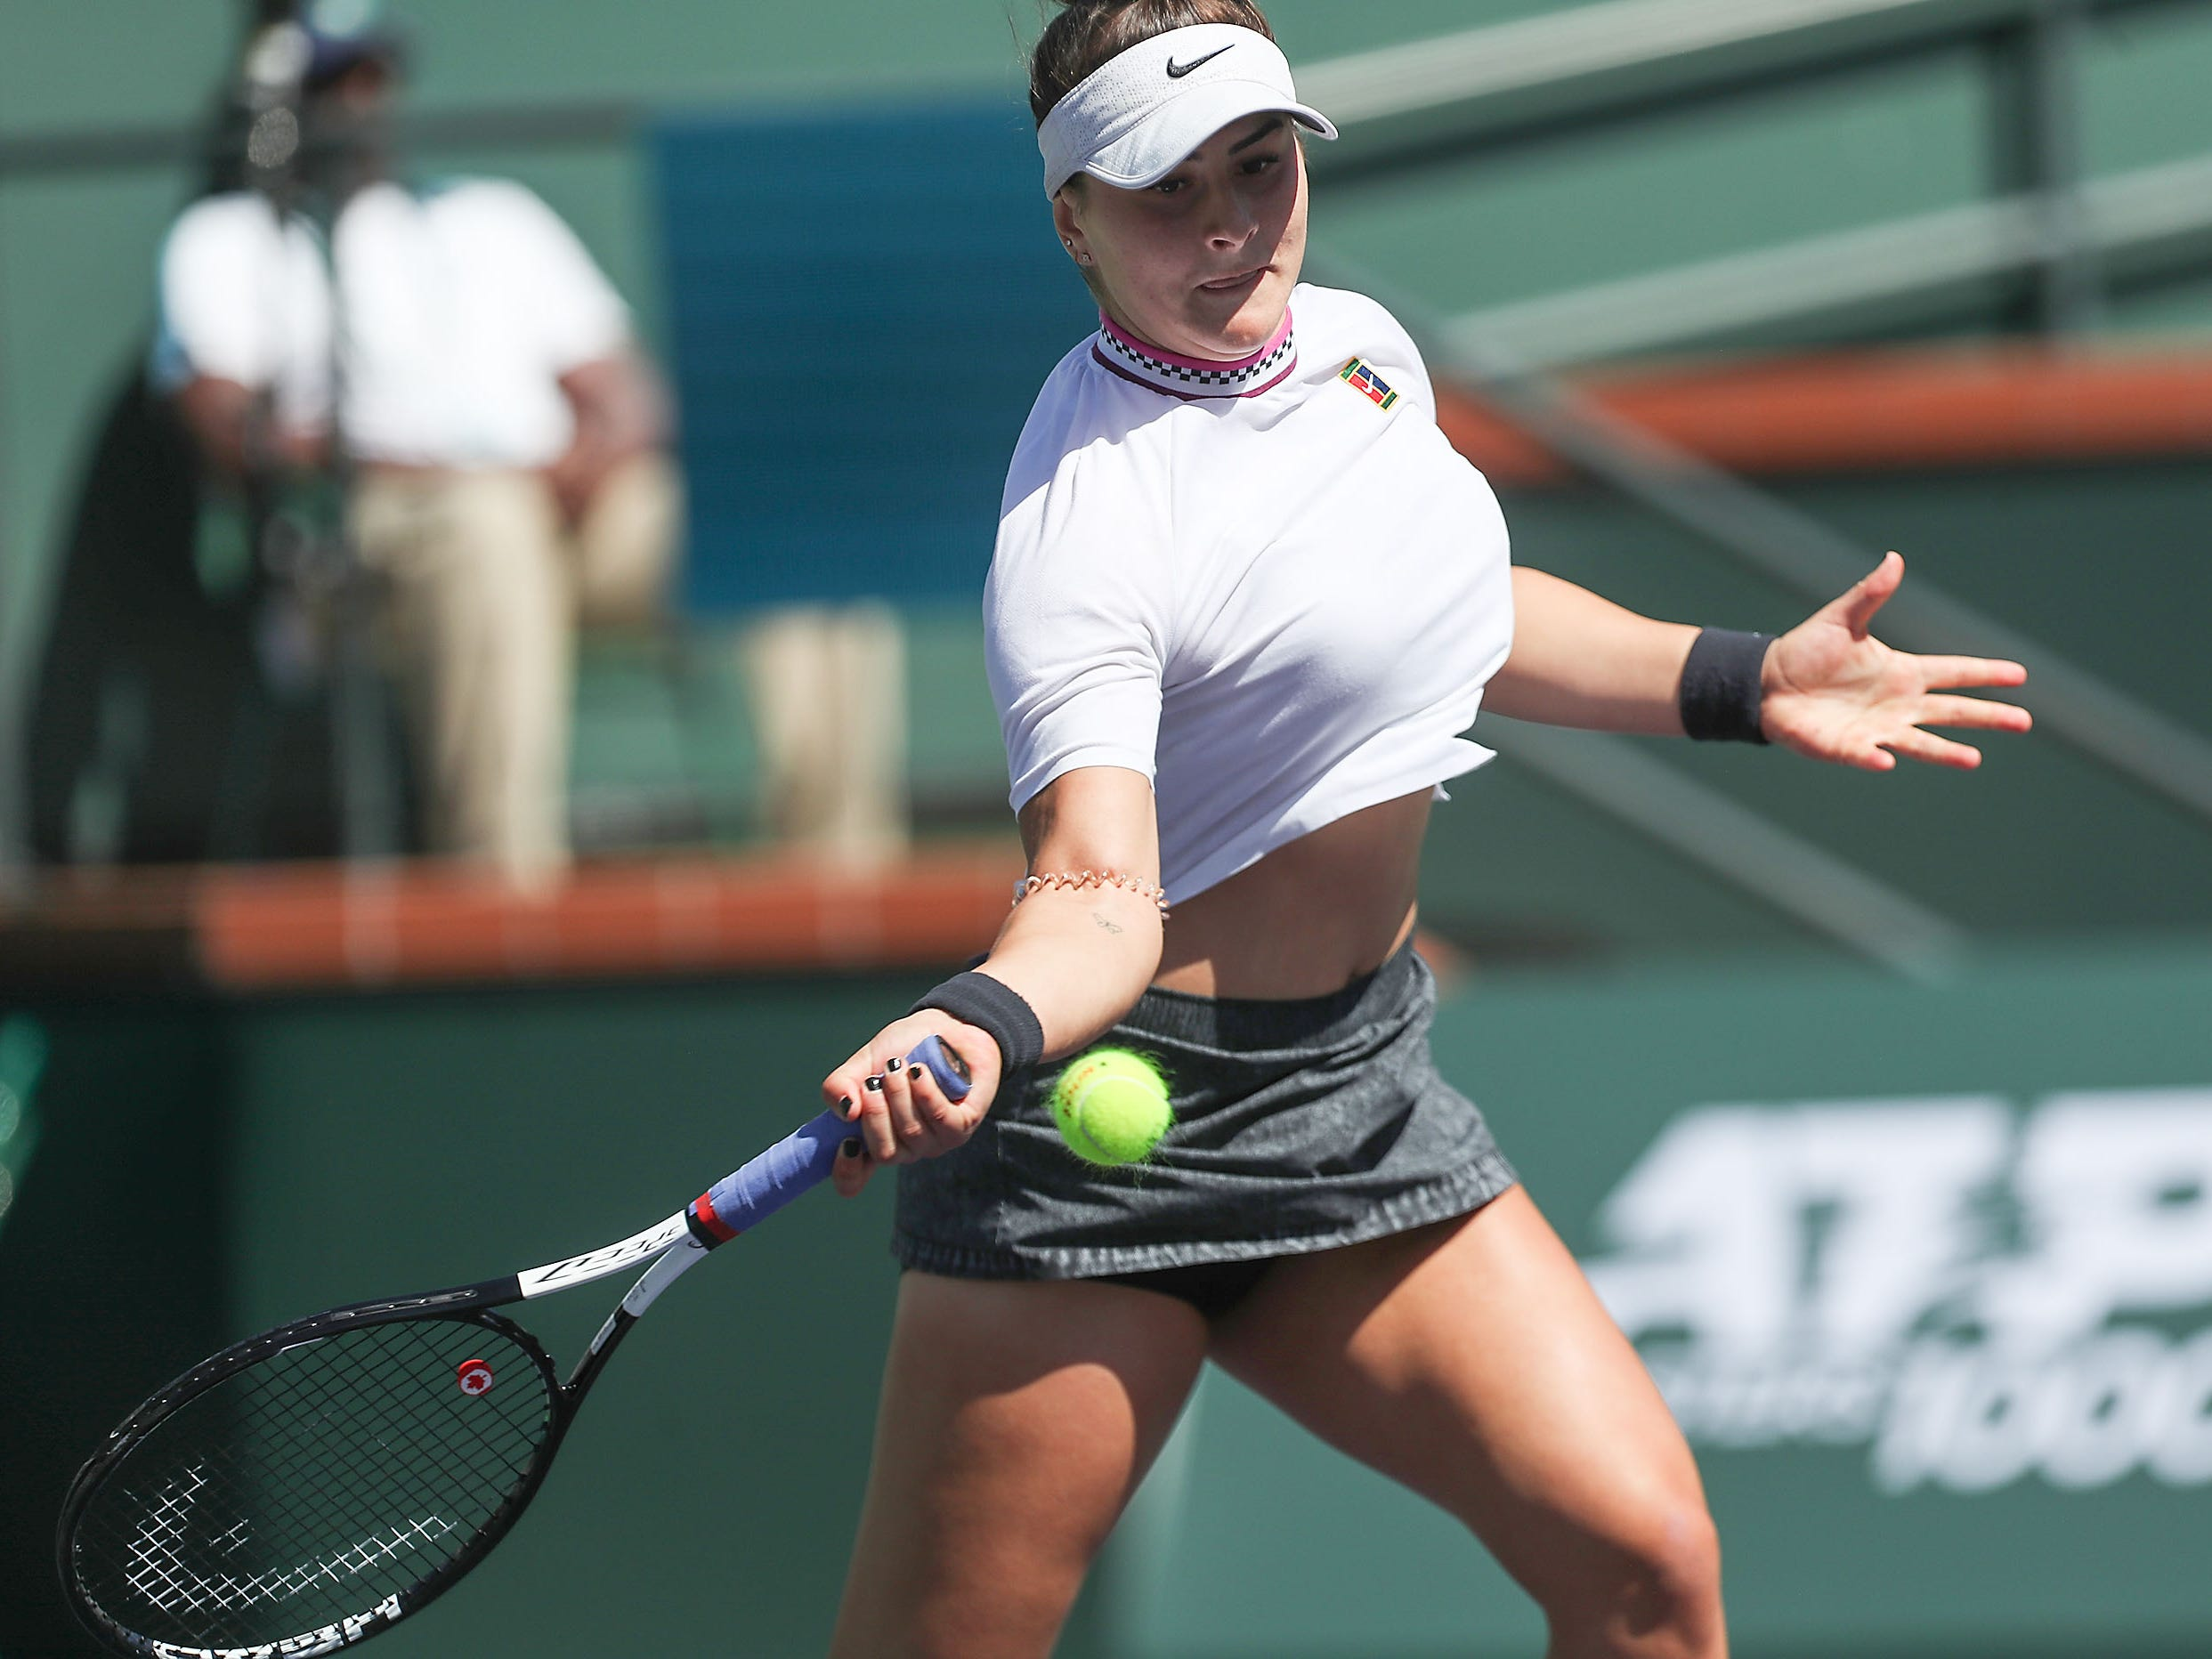 Bianca Andreescu hits during her win over Garbine Muguruza at the BNP Paribas Open in Indian Wells, March 13, 2019.